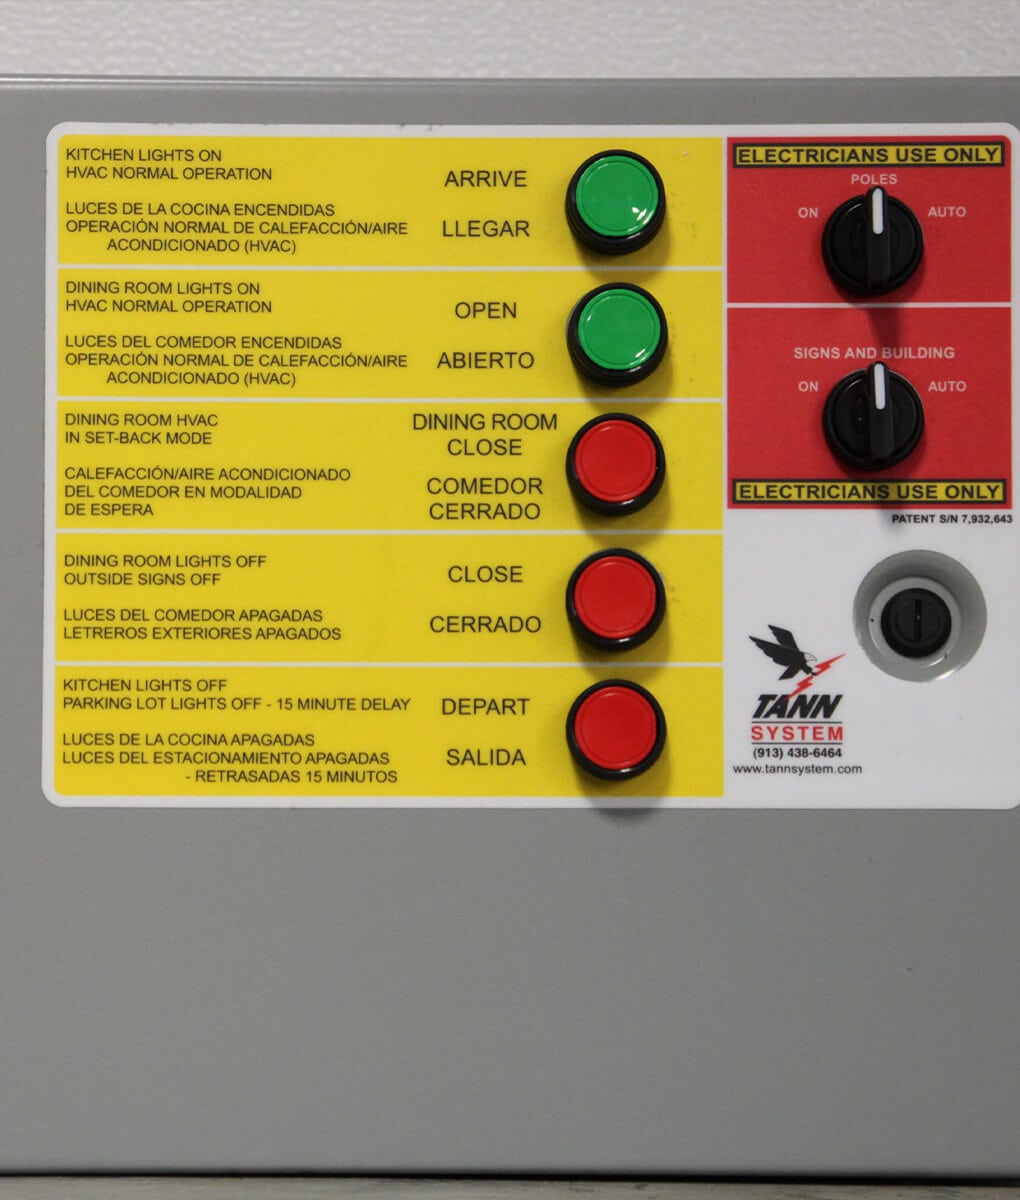 electrical services tann electric kansas city missouri case studies lightning control system